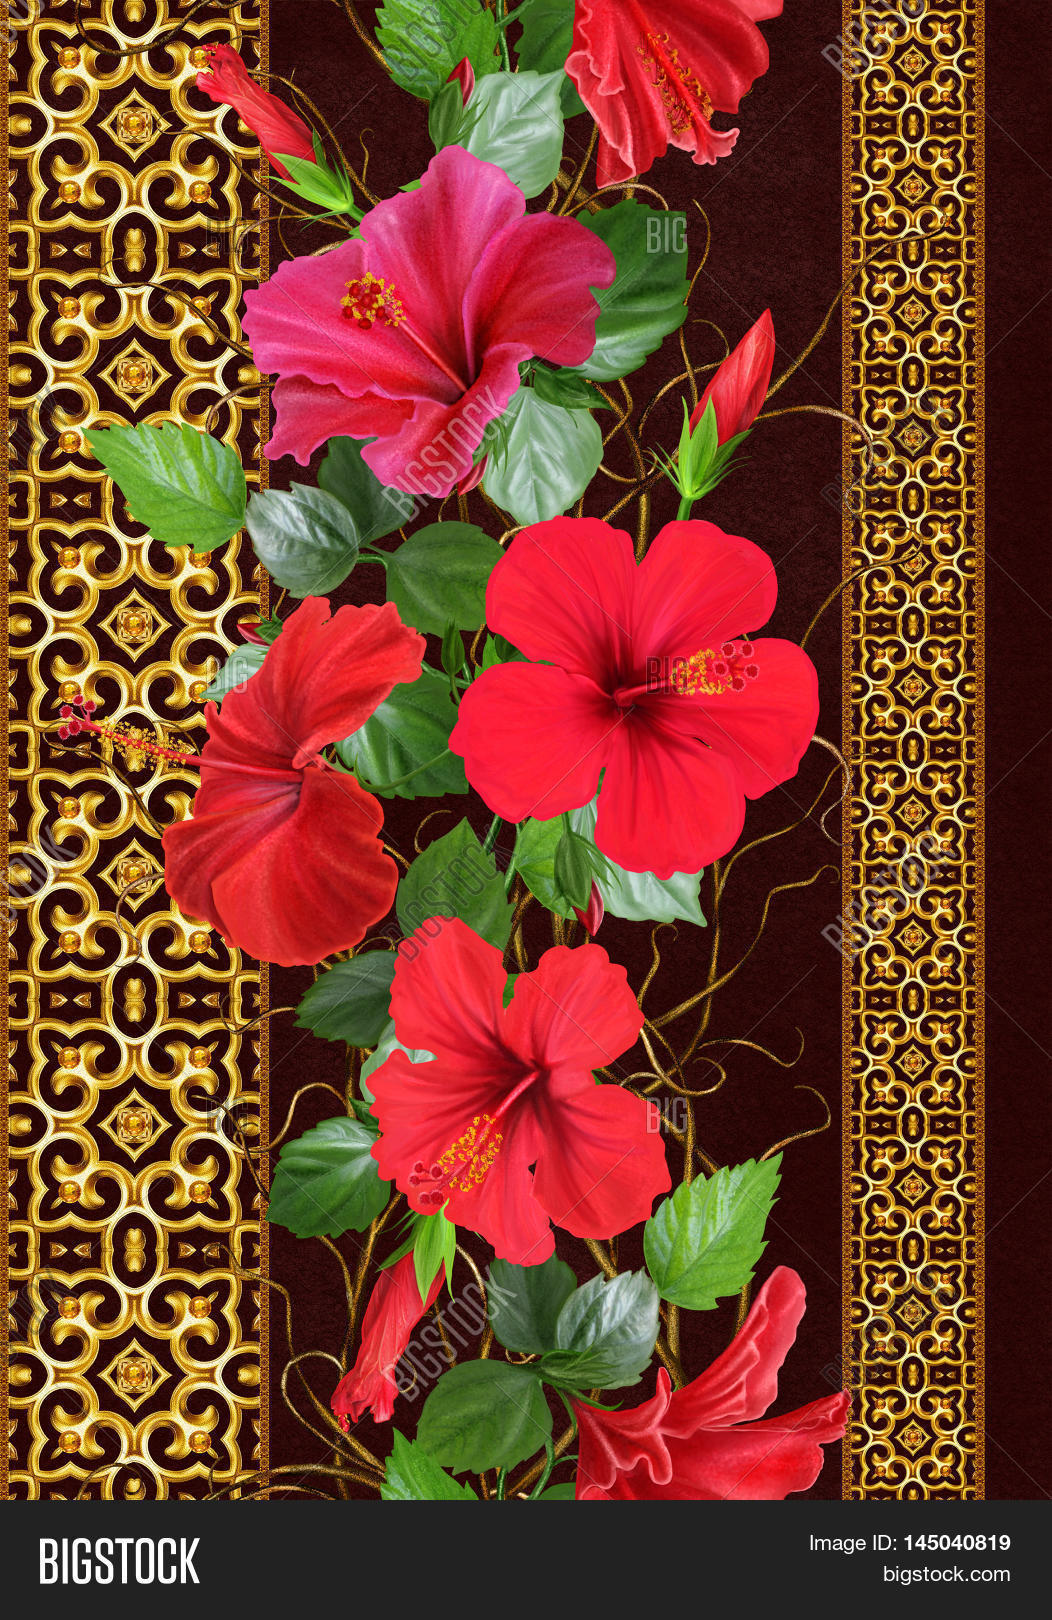 Vertical floral border pattern image photo bigstock vertical floral border pattern seamless flower garland weaving of thin branches red tropical hibiscus izmirmasajfo Gallery